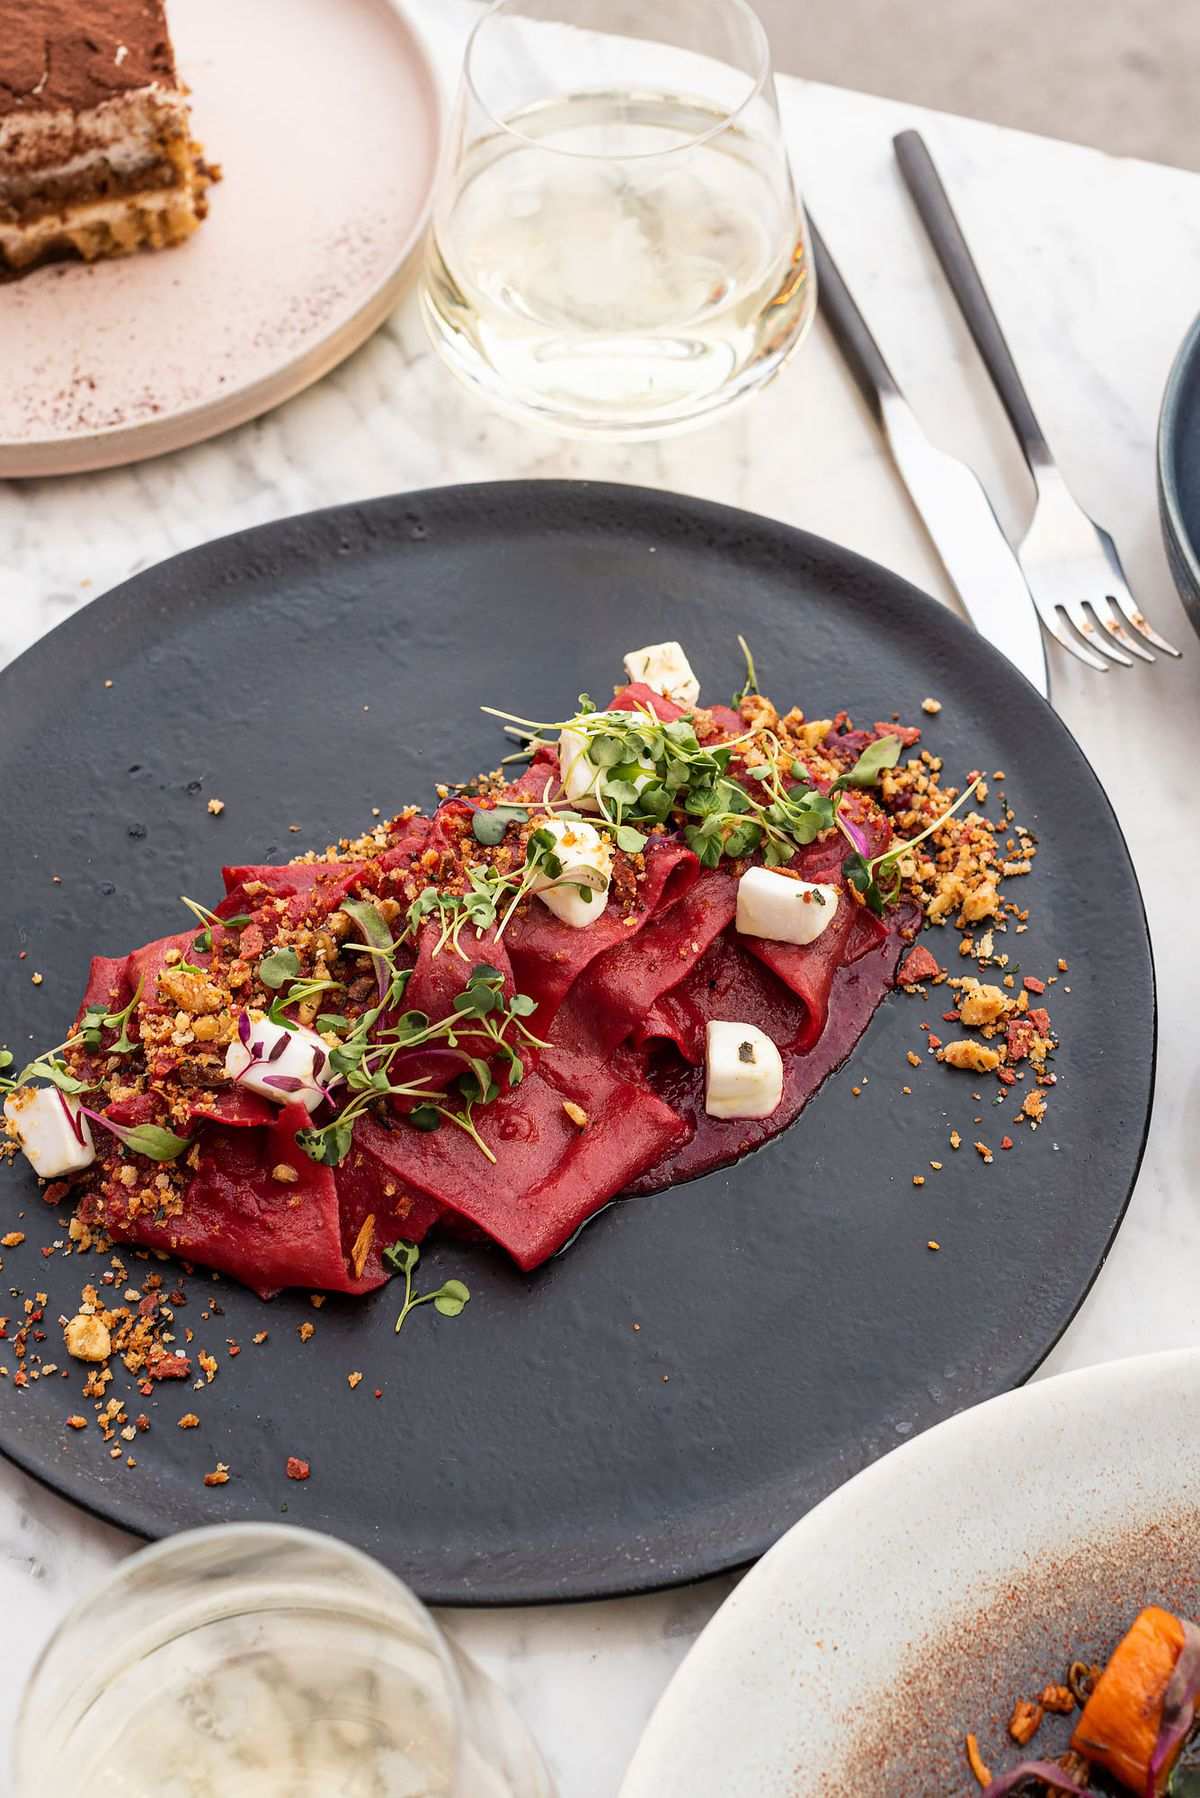 A maroon pasta sits on a dark slate plate from above.